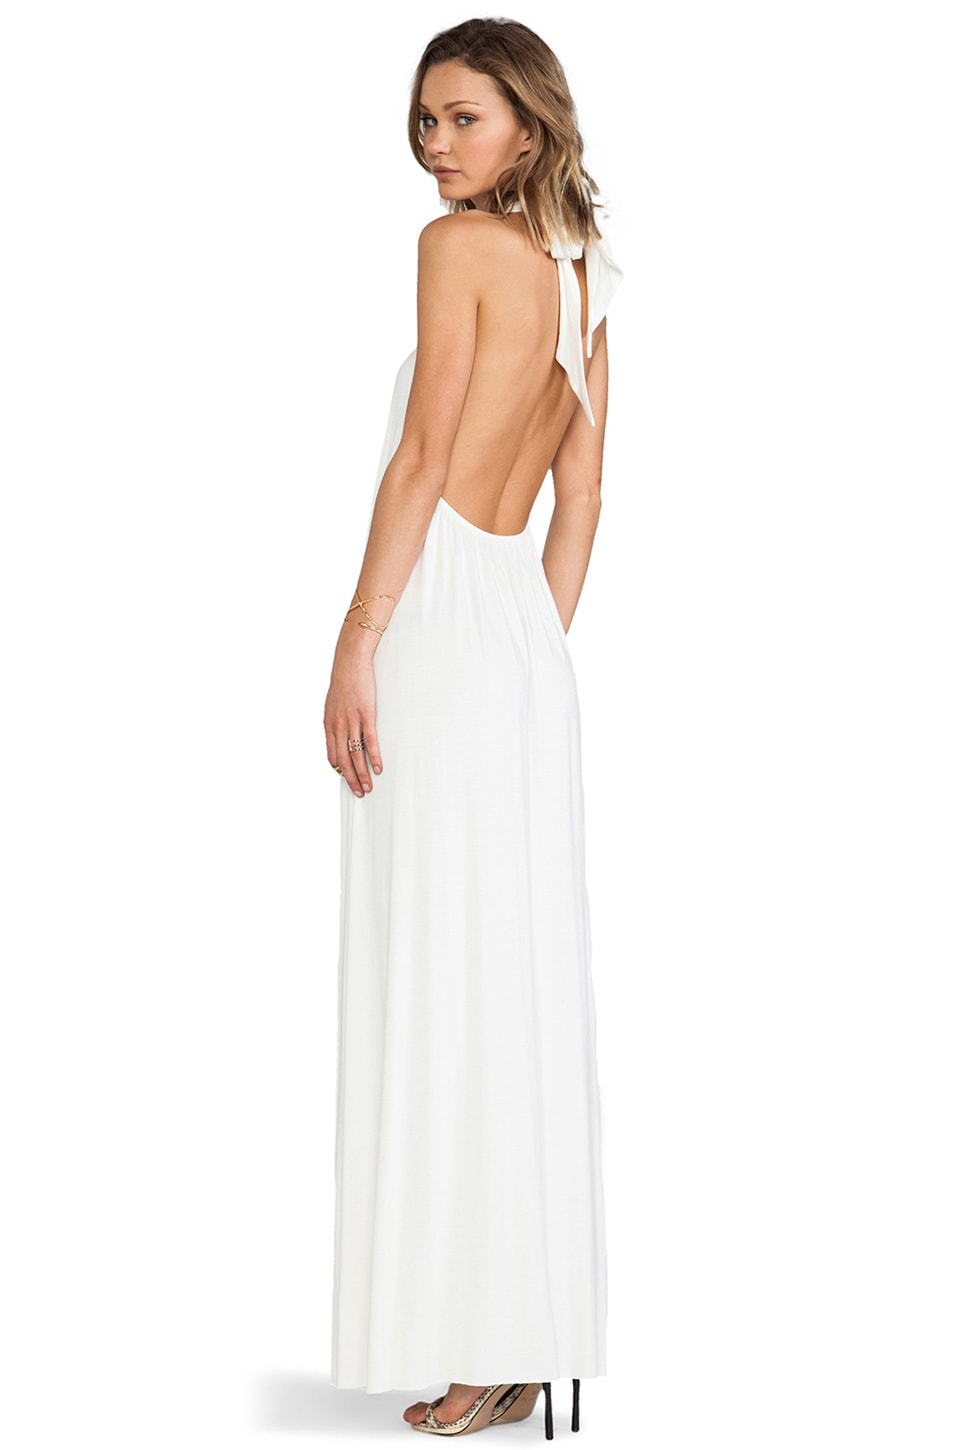 Rachel Pally Renee Halter Dress in White